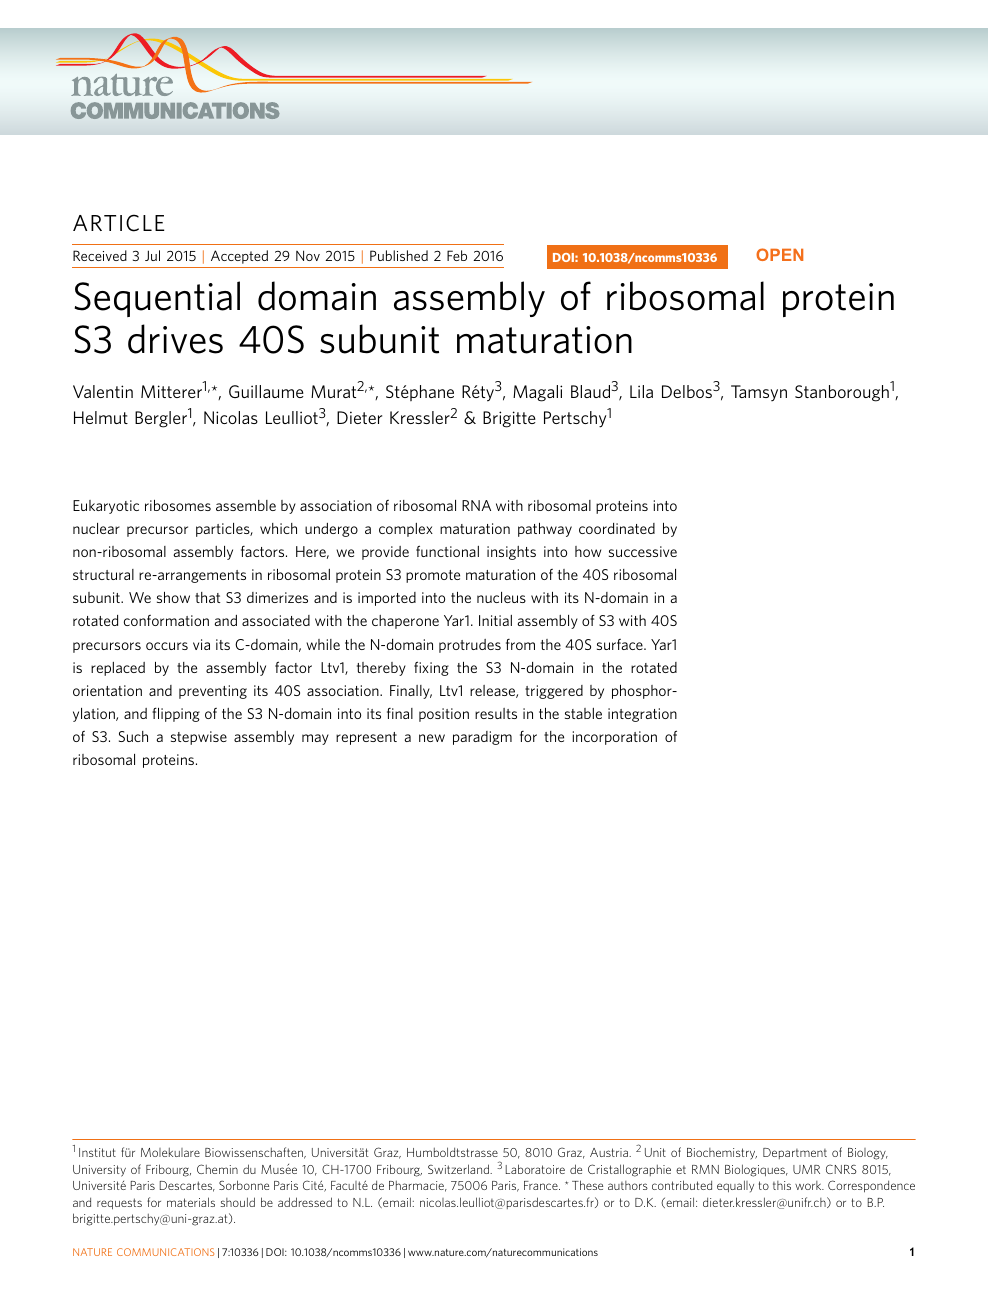 Sequential domain assembly of ribosomal protein S3 drives